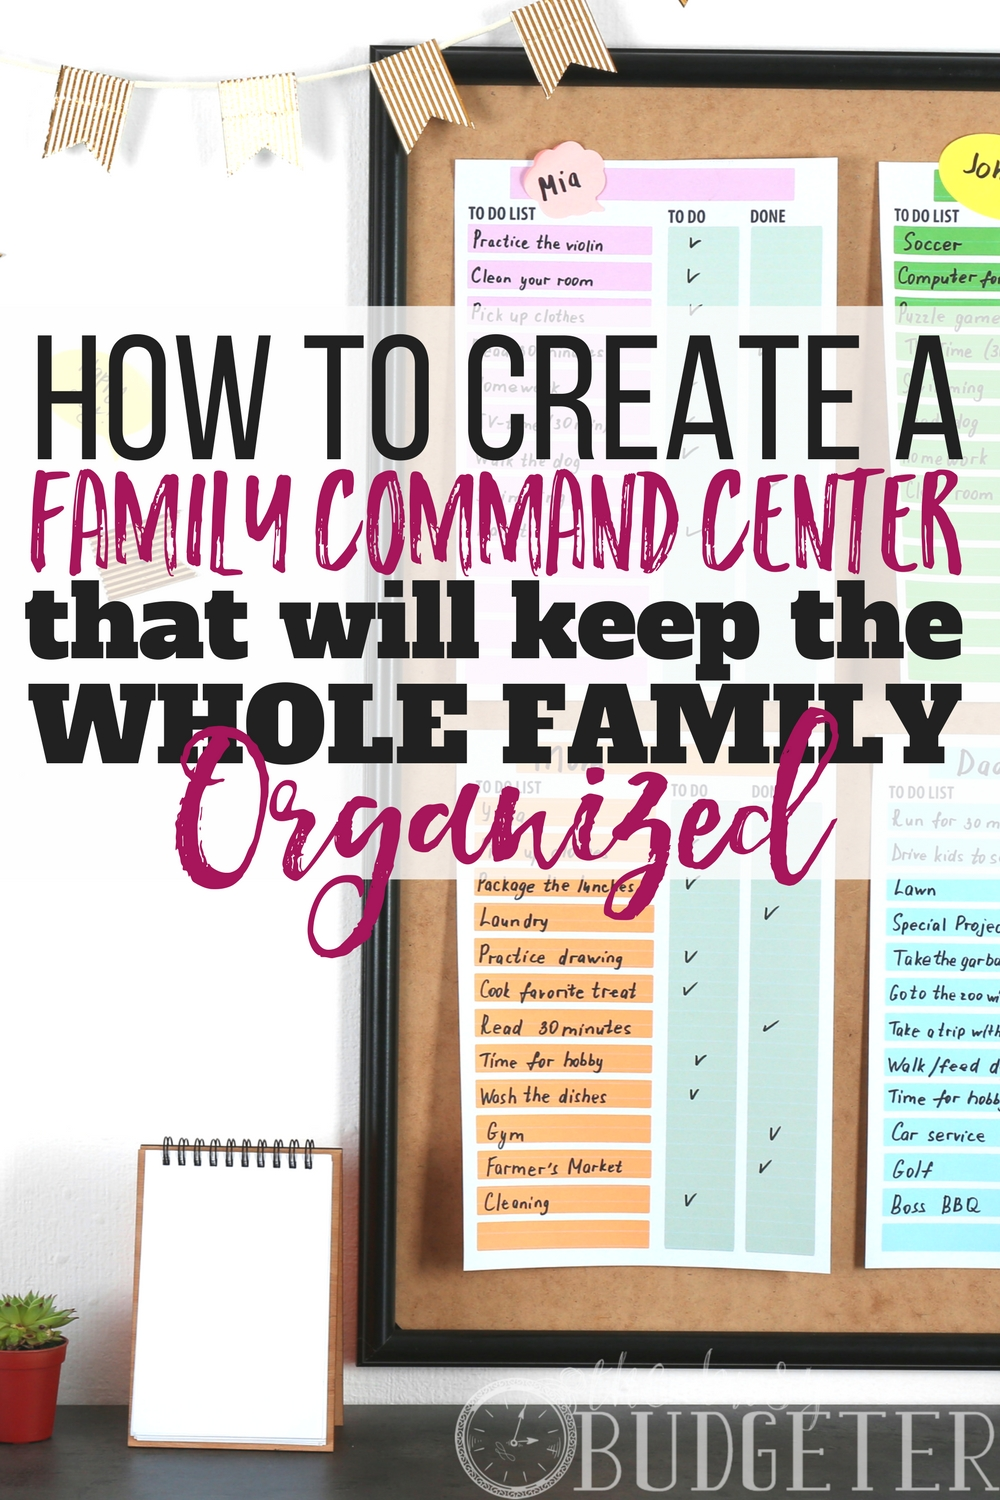 Do you have a family command center? No, I'm actually serious! I thought it was silly at first but oh my goodness-- total game changer. I'm a busy mom and this totally helps me stay organized and on time! I can't live without it now!